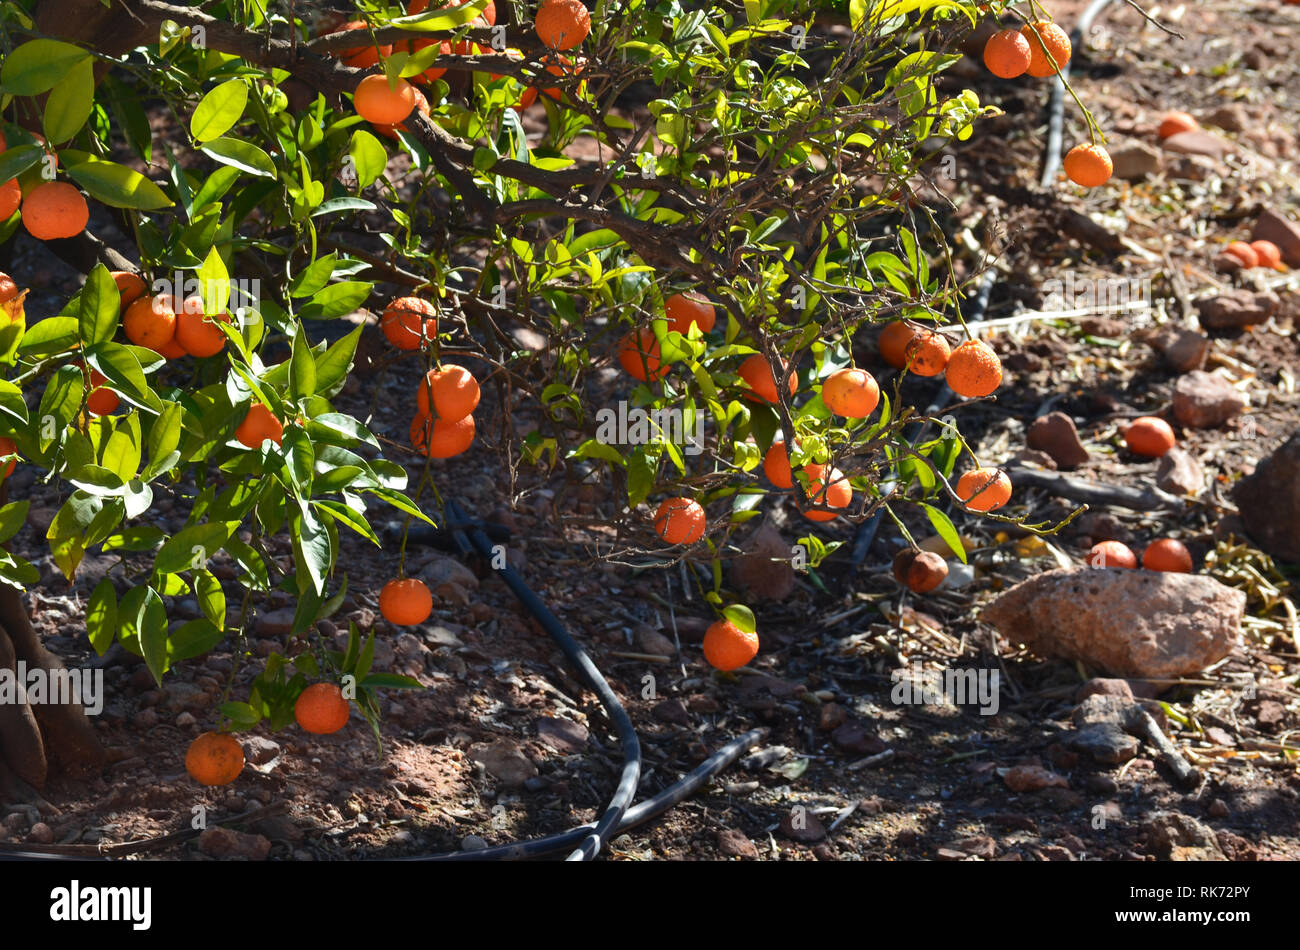 Clementines left unpicked in the trees, showing the effects of the 2019 citrus fruit crisis in València, Spain - Stock Image